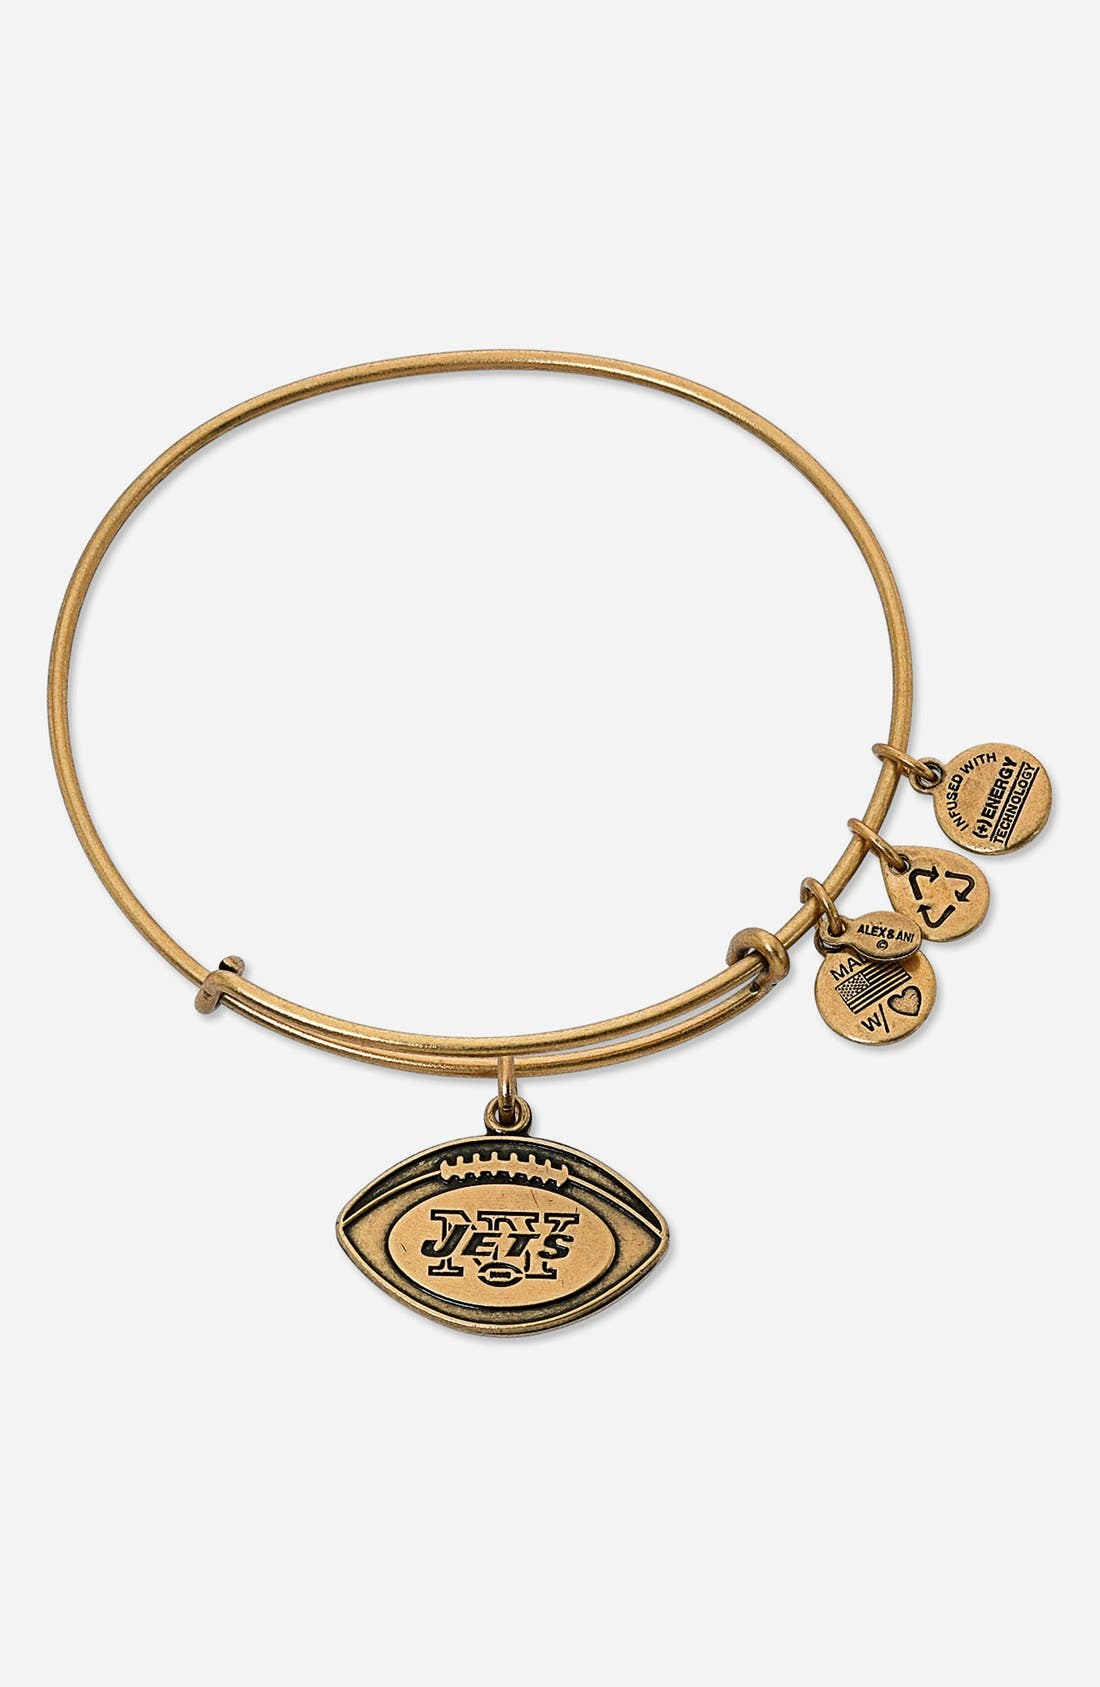 Alternate Image 1 Selected - Alex and Ani 'New York Jets' Adjustable Wire Bangle